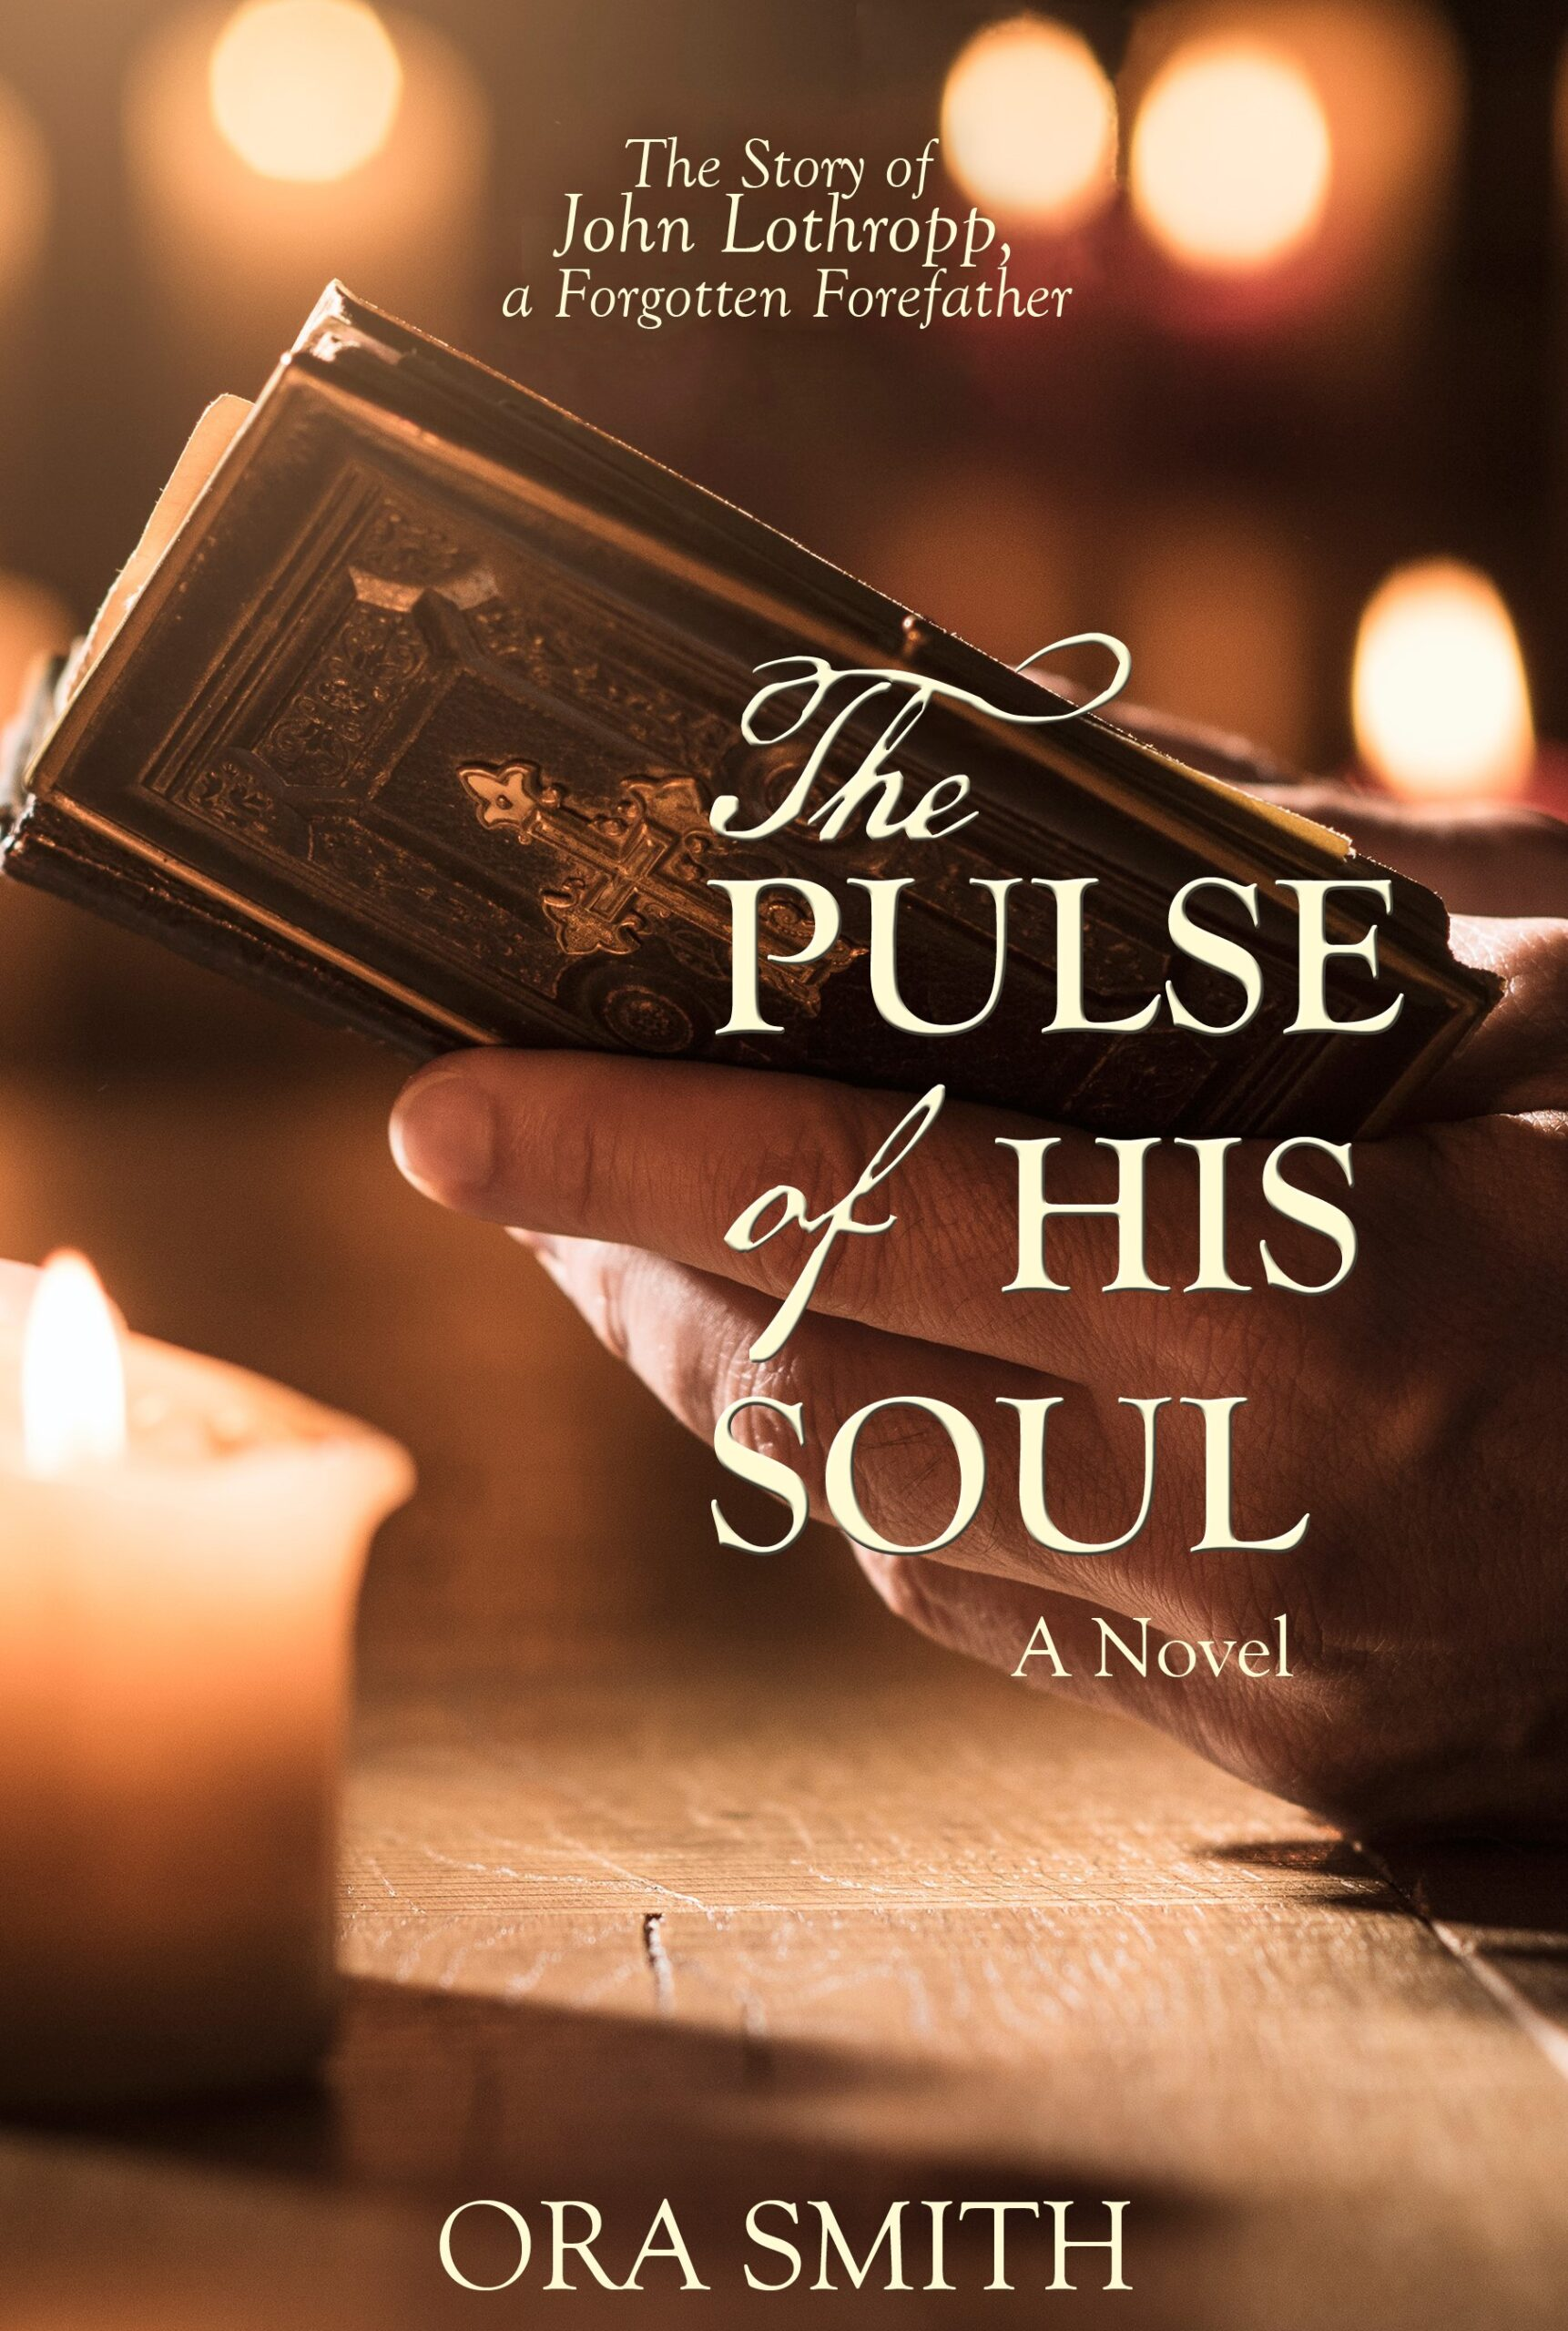 At the height of Separatist suppression and enforced Anglican worship in England, Reverend John Lothropp meets and marries Hannah Howse. The witty, educated vicar's daughter immediately challenges his decision to put God before a wife. In a world spiraling into hypocrisy, tyranny, and betrayal, Hannah refuses to break from her Anglican roots. But when John comes face-to-face with his deep-seated convictions about religious freedom, he's forced to make a hard choice—renounce his orders with the Church of England to become an outlawed Separatist or conform and save his marriage, his family, and his life. Considered one of the most important ministers to follow in the footsteps of the Plymouth Pilgrims, John Lothropp helped plant the seeds of religious freedom in America's soil and left a legacy of well-known individuals who influenced the nation's destiny.